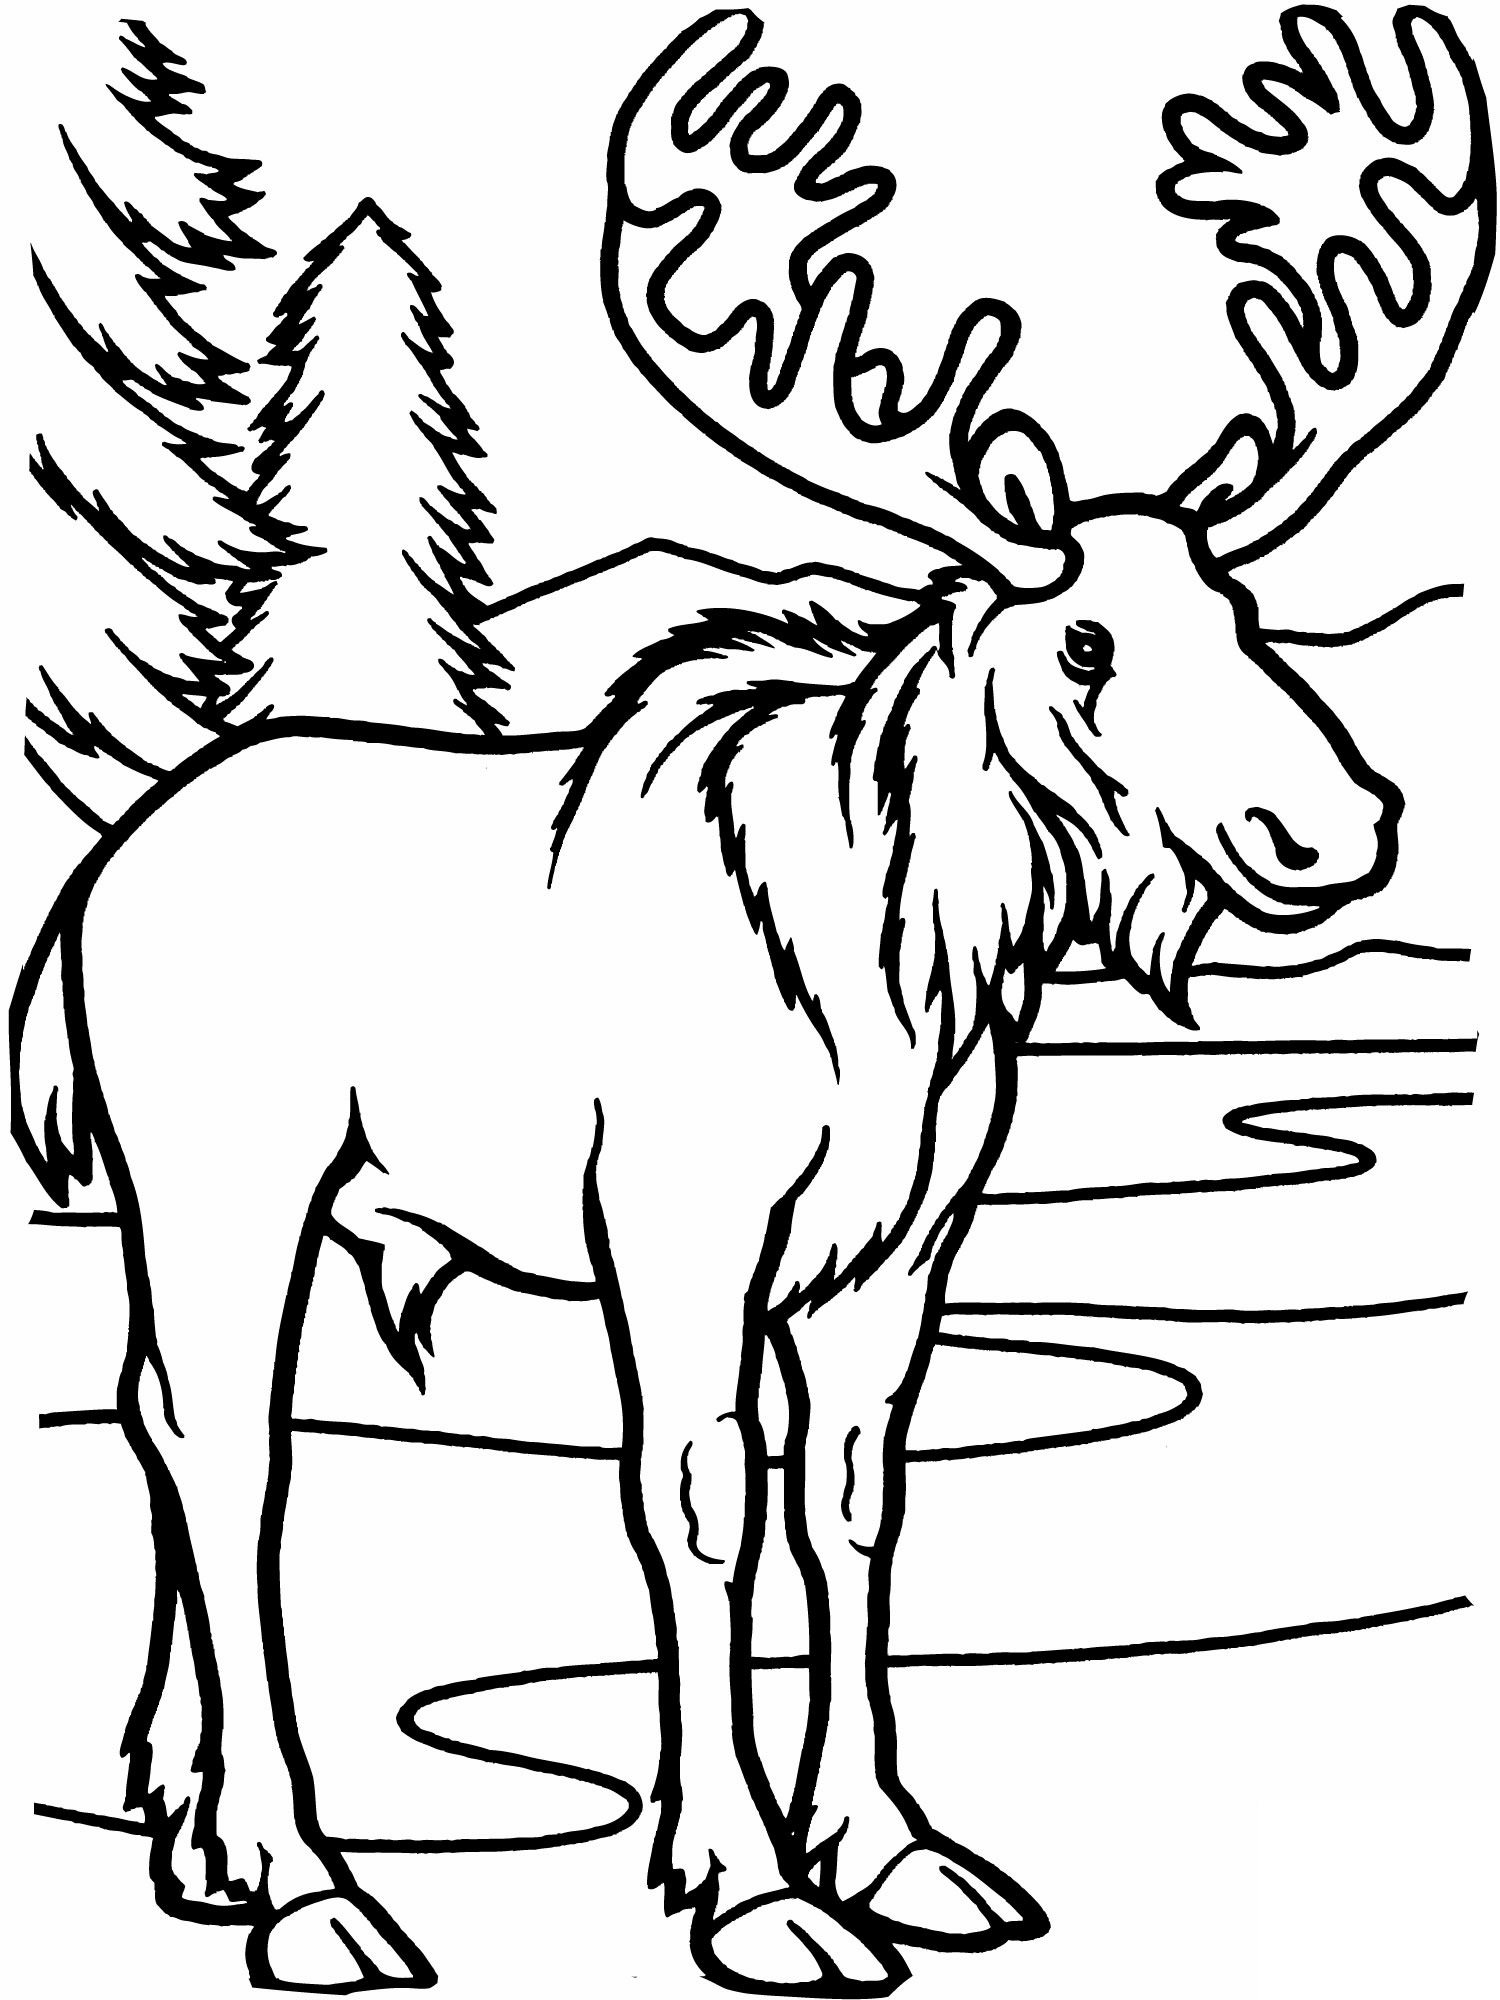 animal outlines to color easy coloring pages best coloring pages for kids outlines color to animal